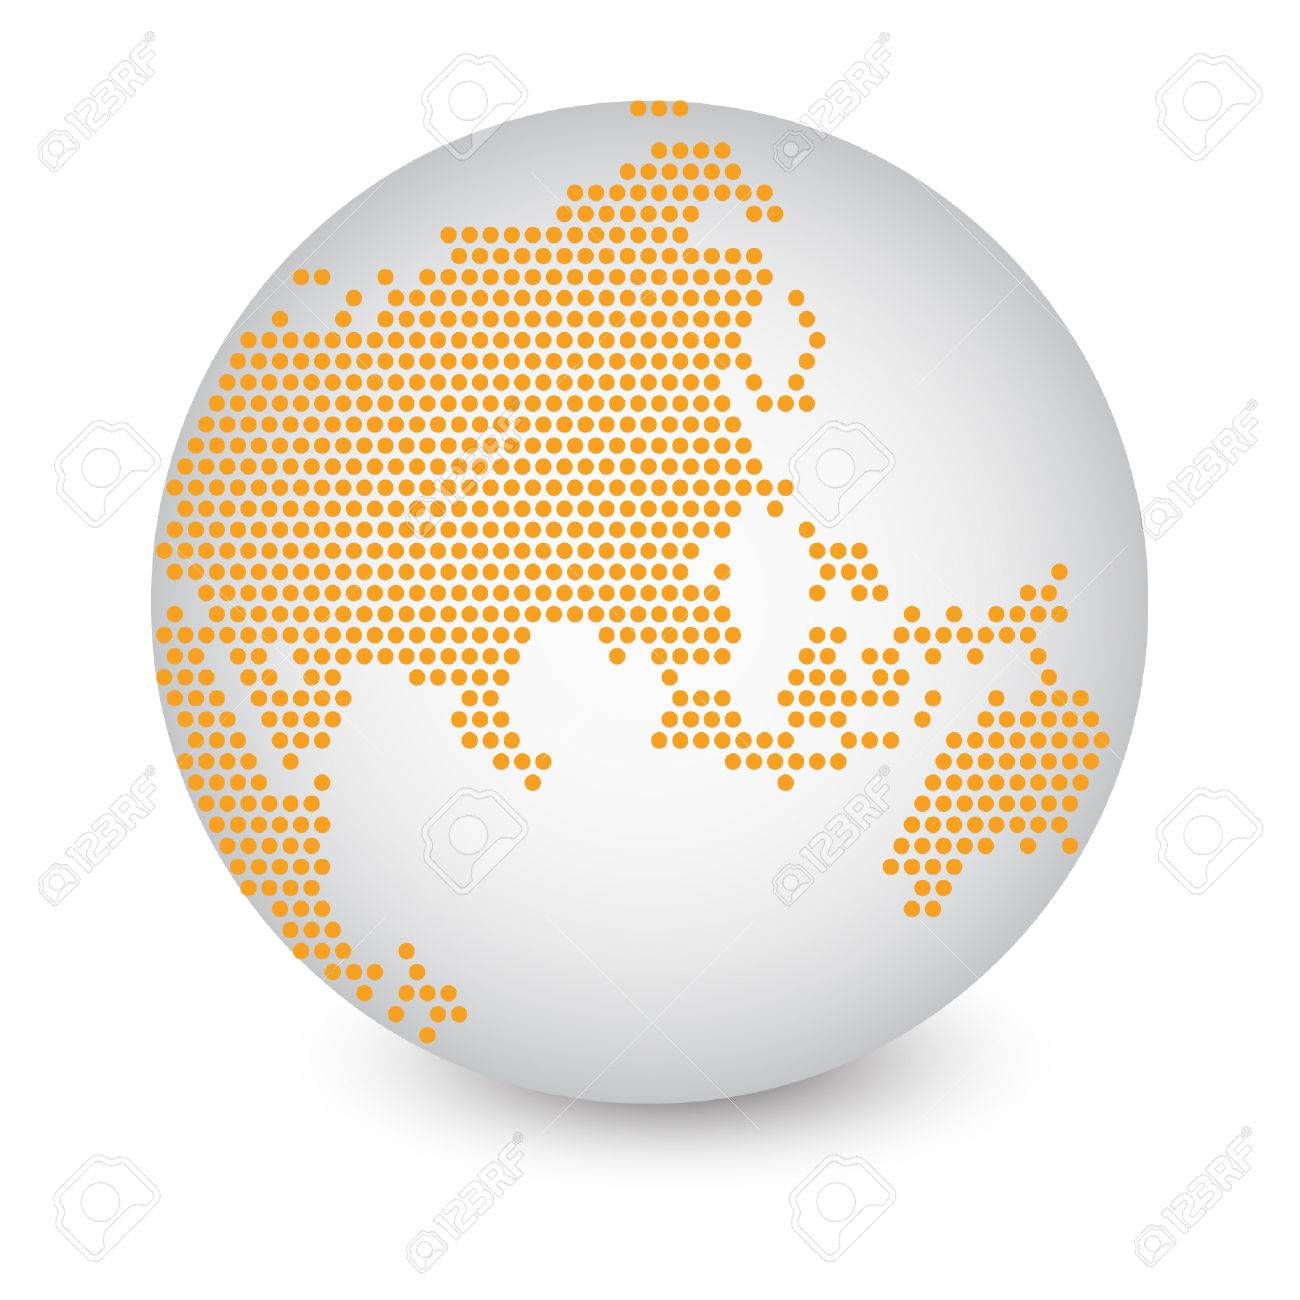 Dotted world map globe hecho de ilustracin crculo formas dotted world map globe hecho de ilustracin crculo formas vectoriales eps 10 foto de archivo gumiabroncs Image collections